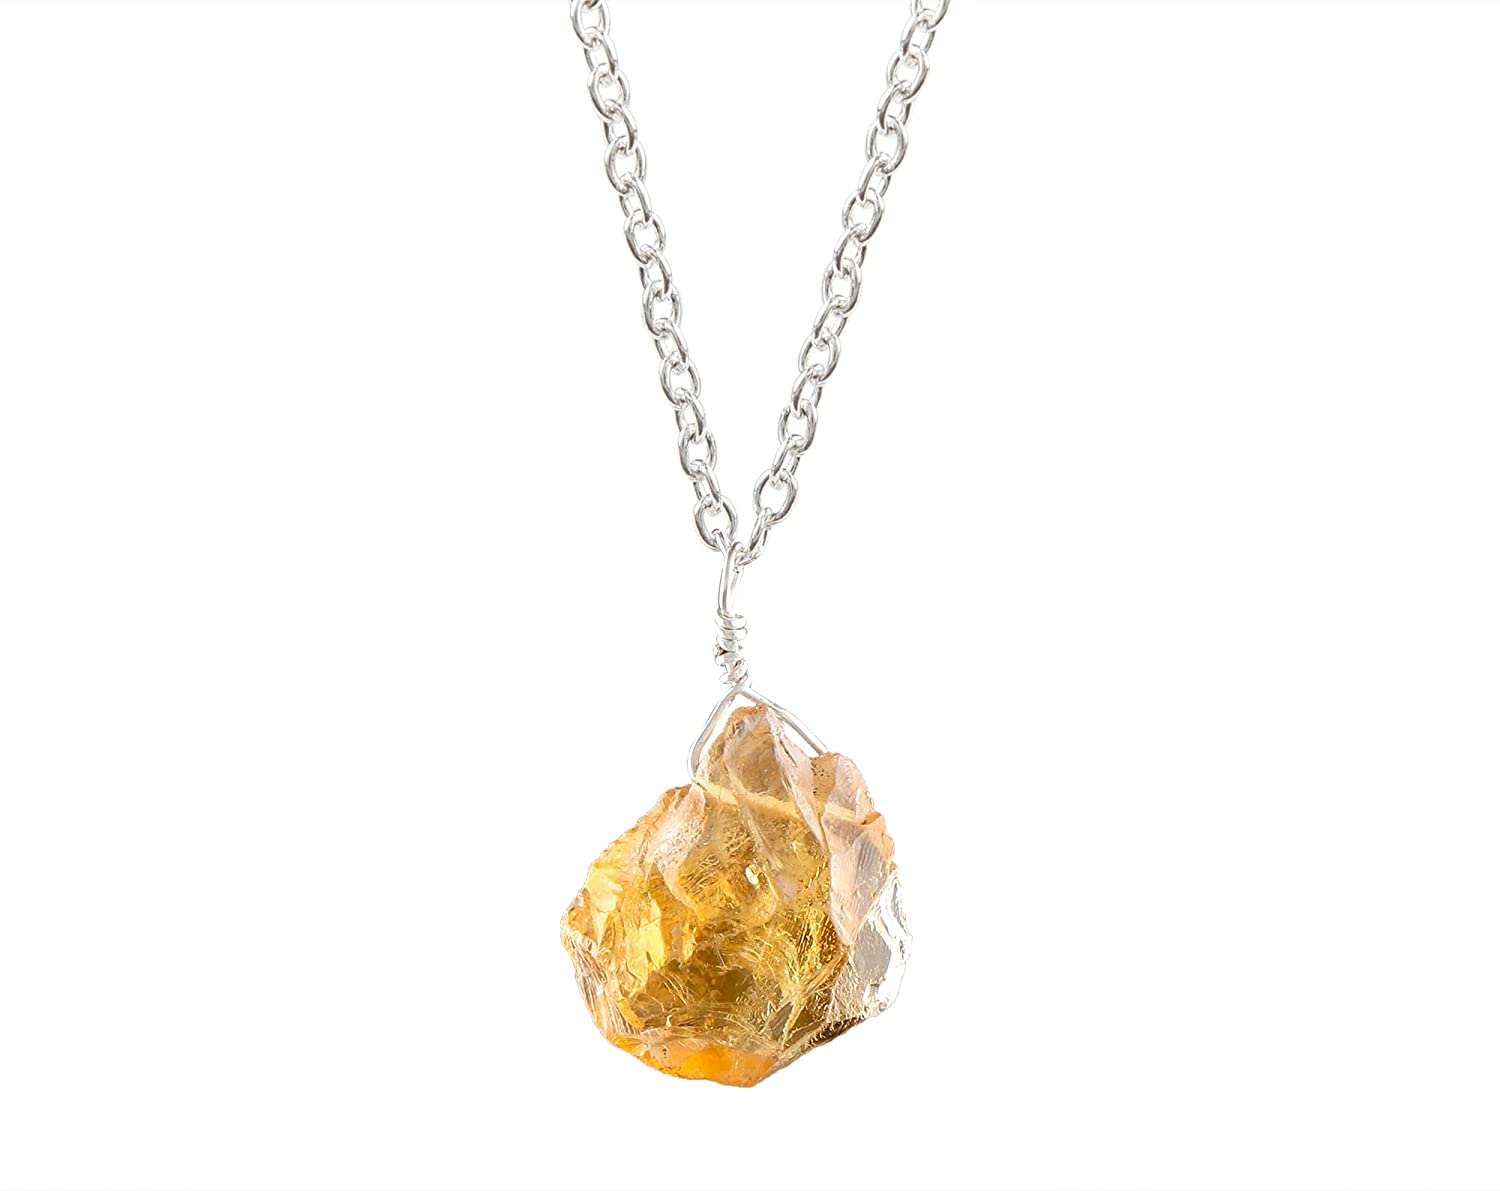 Max 73% OFF Dainty Raw Citrine Necklace in Sterling Silver inch Ranking TOP20 18 November